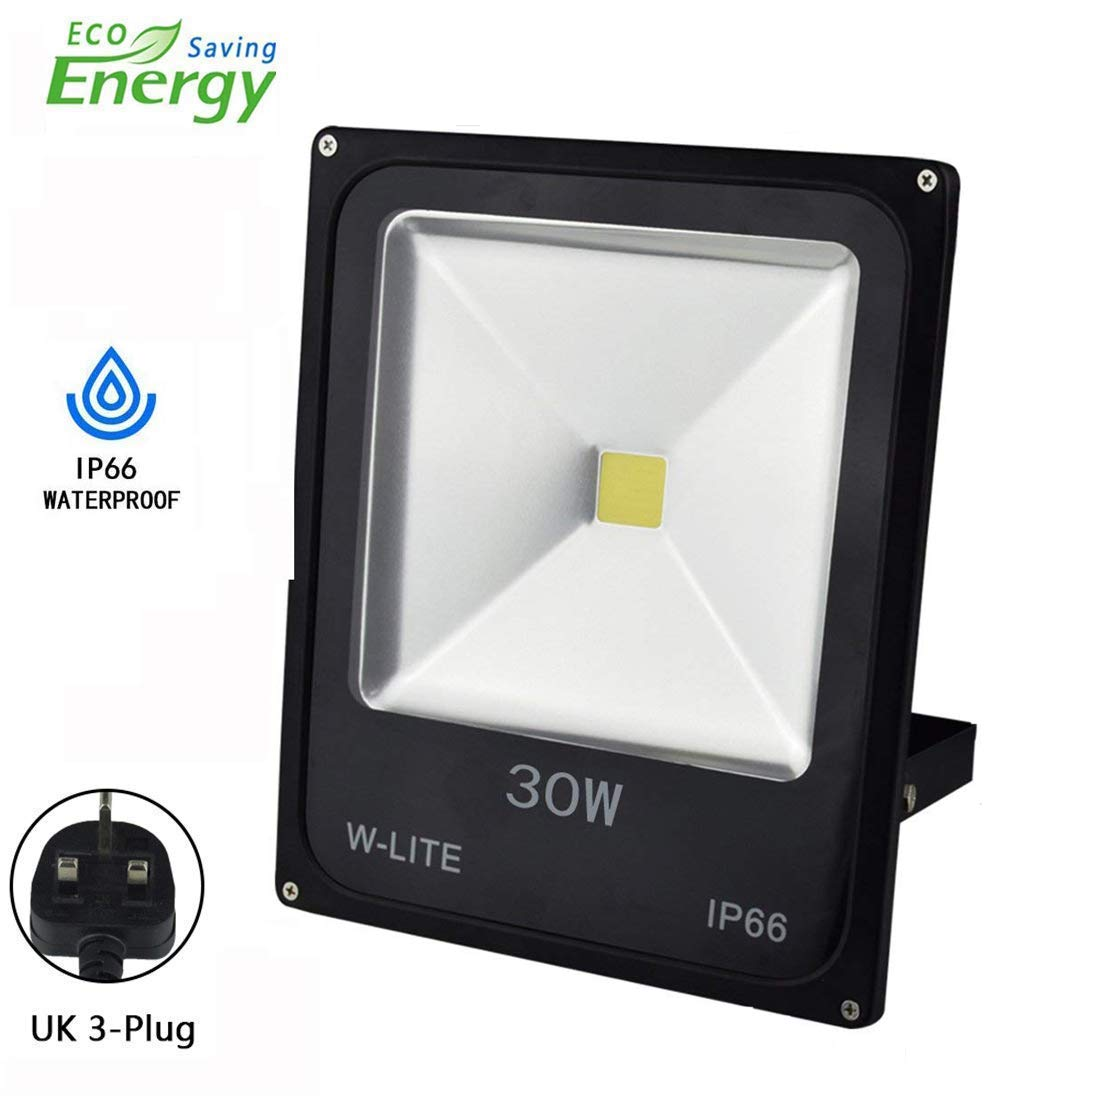 50W Led Outdoor Flood Lights Garden, Waterproof Outside Security Floodlights Fitting for Garden/Yard/Lawn/Patio/Porch, Aluminum, 6000K Soft Daylight, Full Power 350W Equivalent, 86-265V Input(with UK 3-Plug) W-LITE